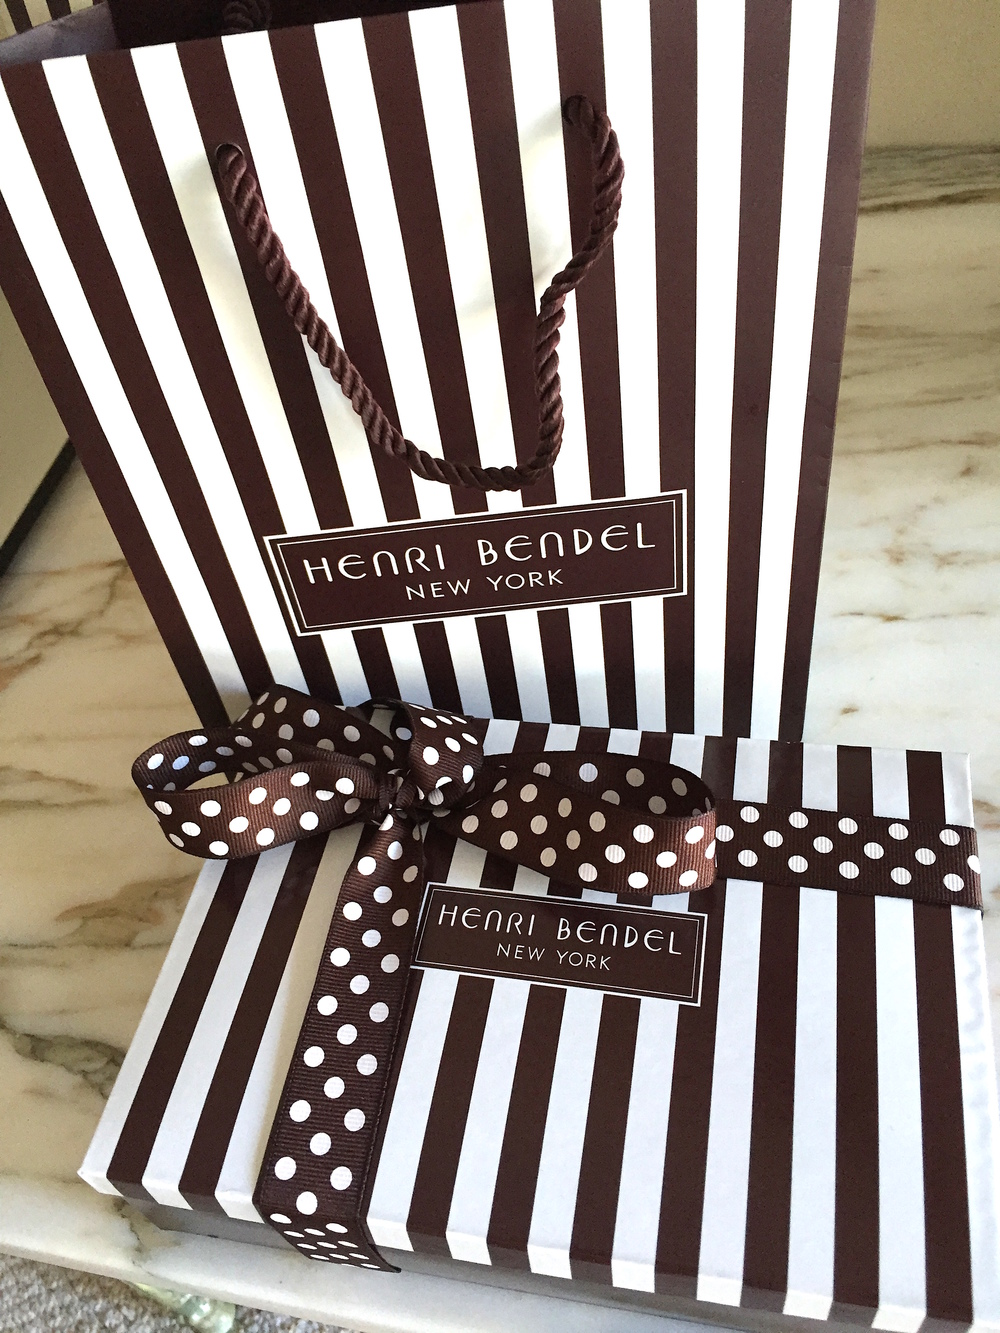 We bought a gift, and the wrapping was delightful. It shows the congruency that this luxury brand has and maintains beautifully. P.S. The service was superb!    Is Your Brand Package Remarkable and Reflective of Your Strategy?